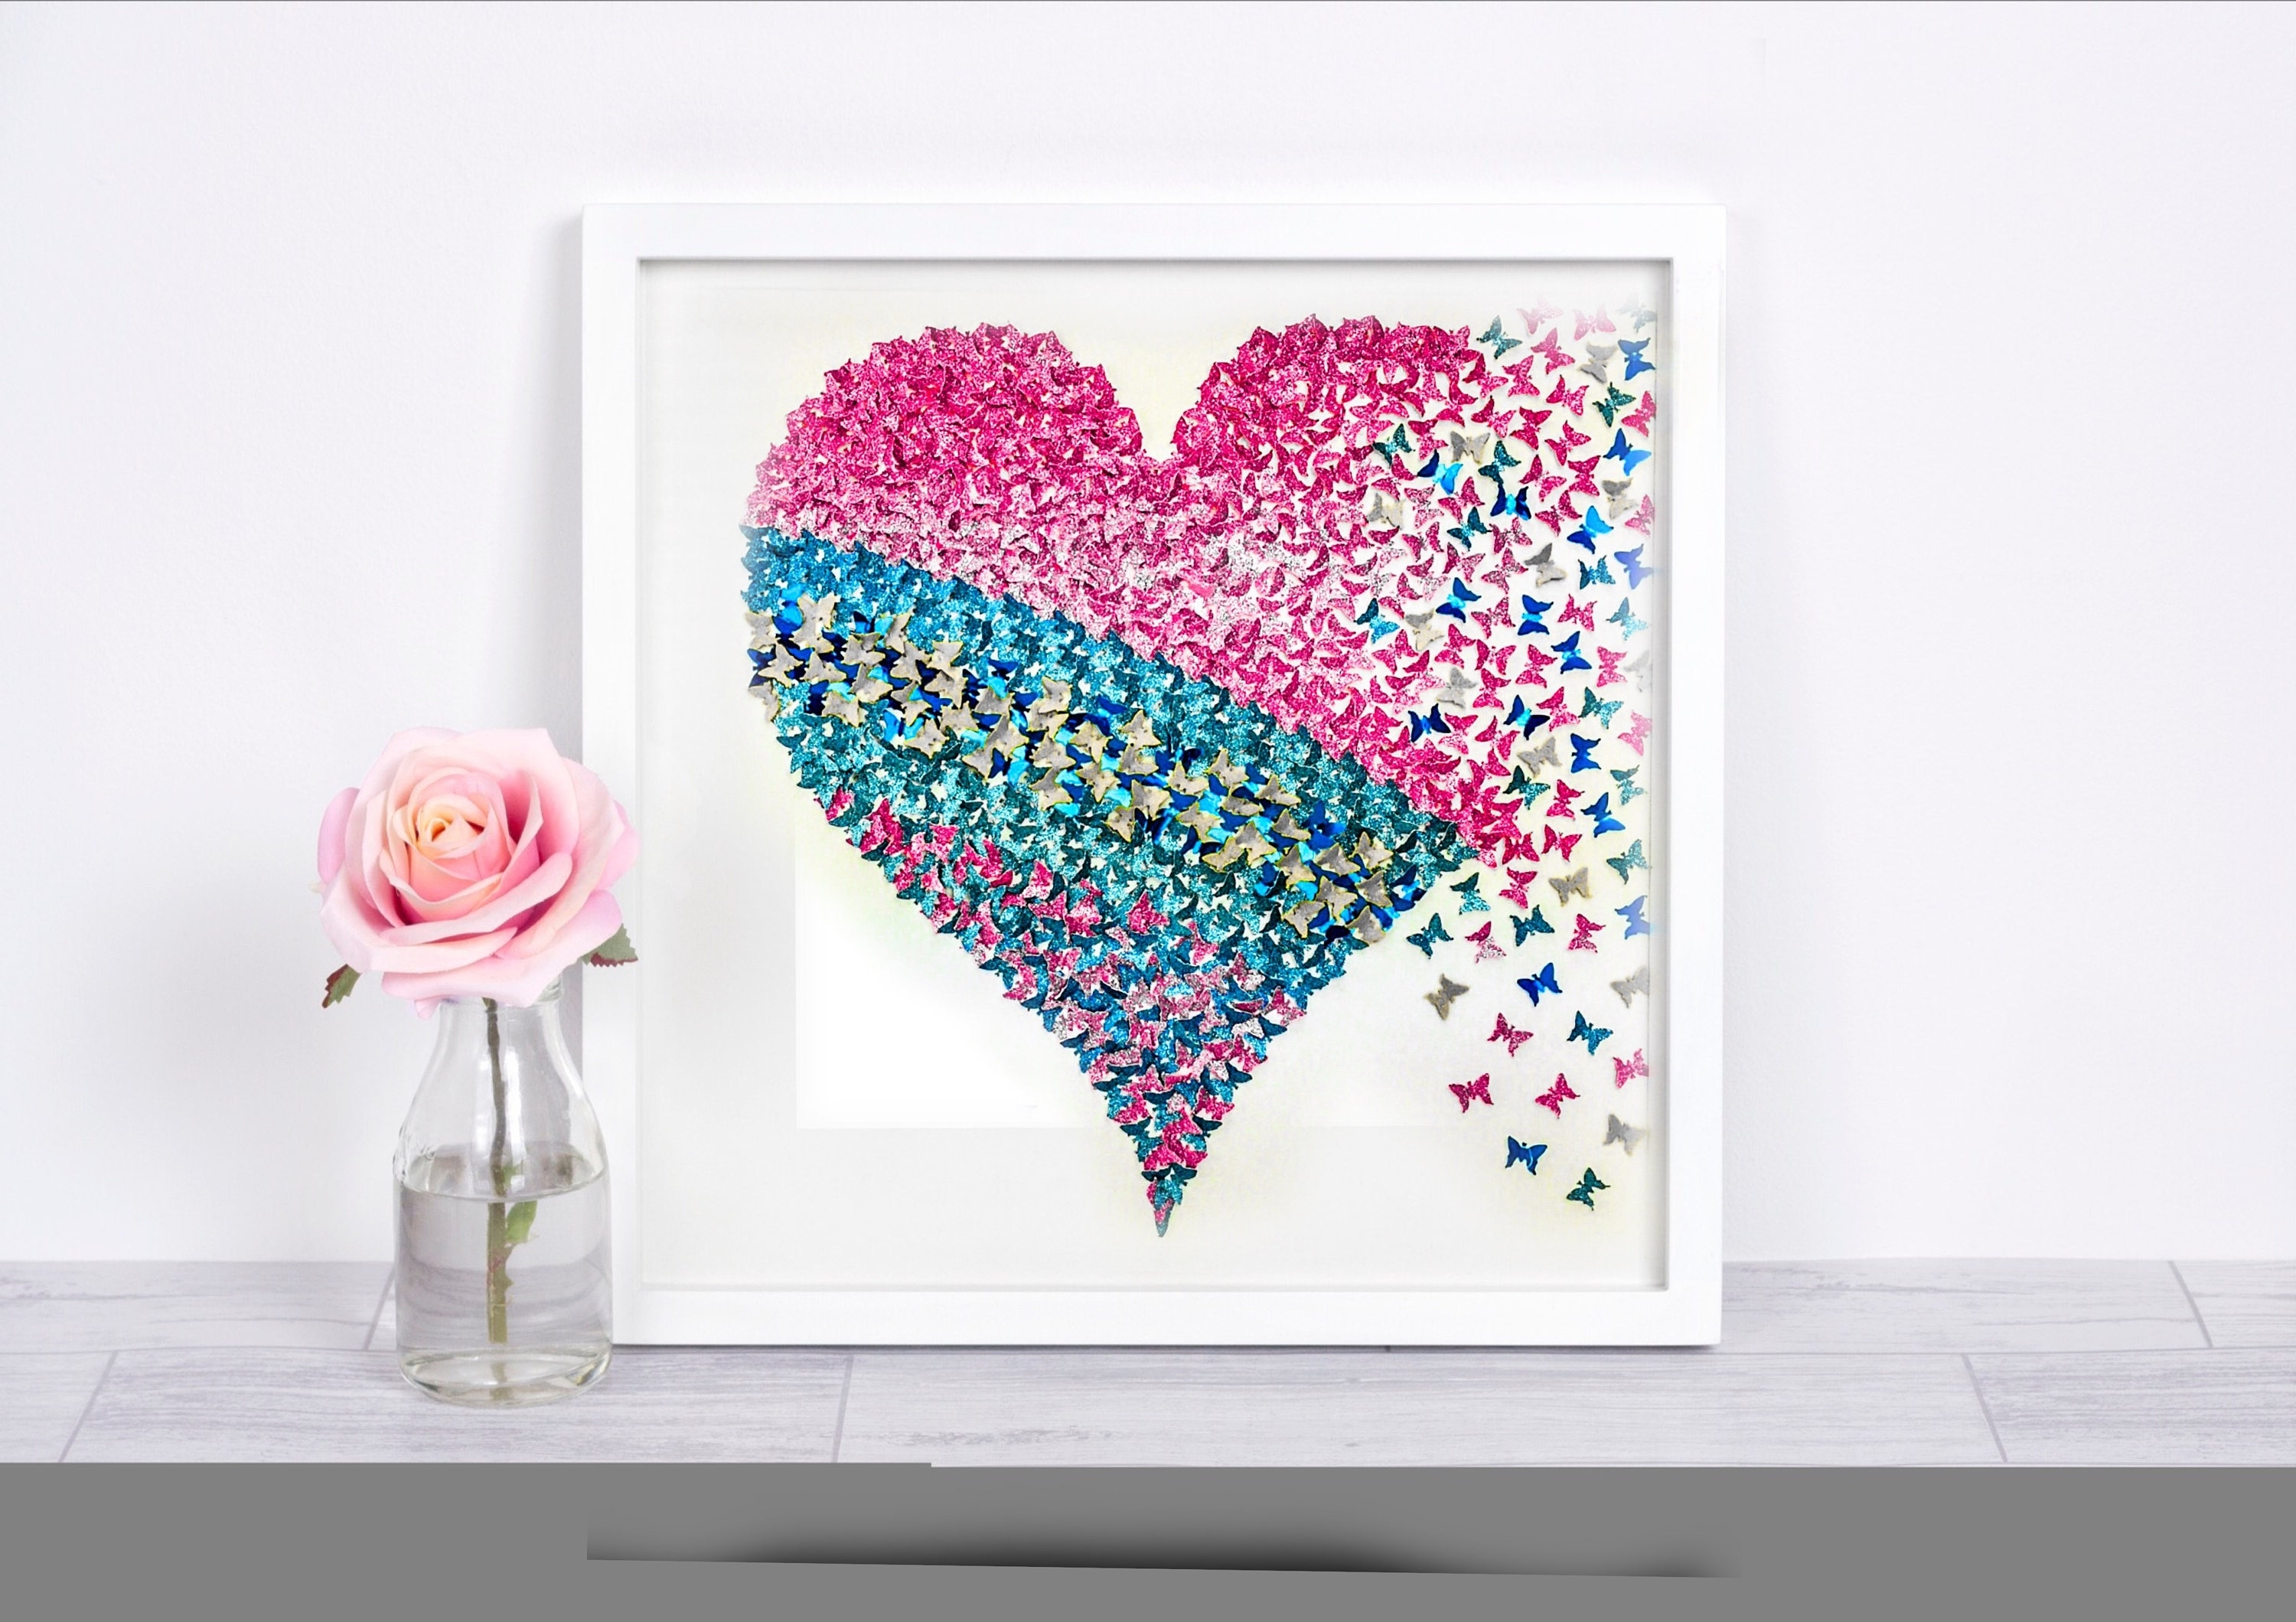 Paper Butterfly , 3D Butterfly Wall Art, Butterfly Heart Pertaining To Fashionable Heart 3D Wall Art (View 12 of 15)